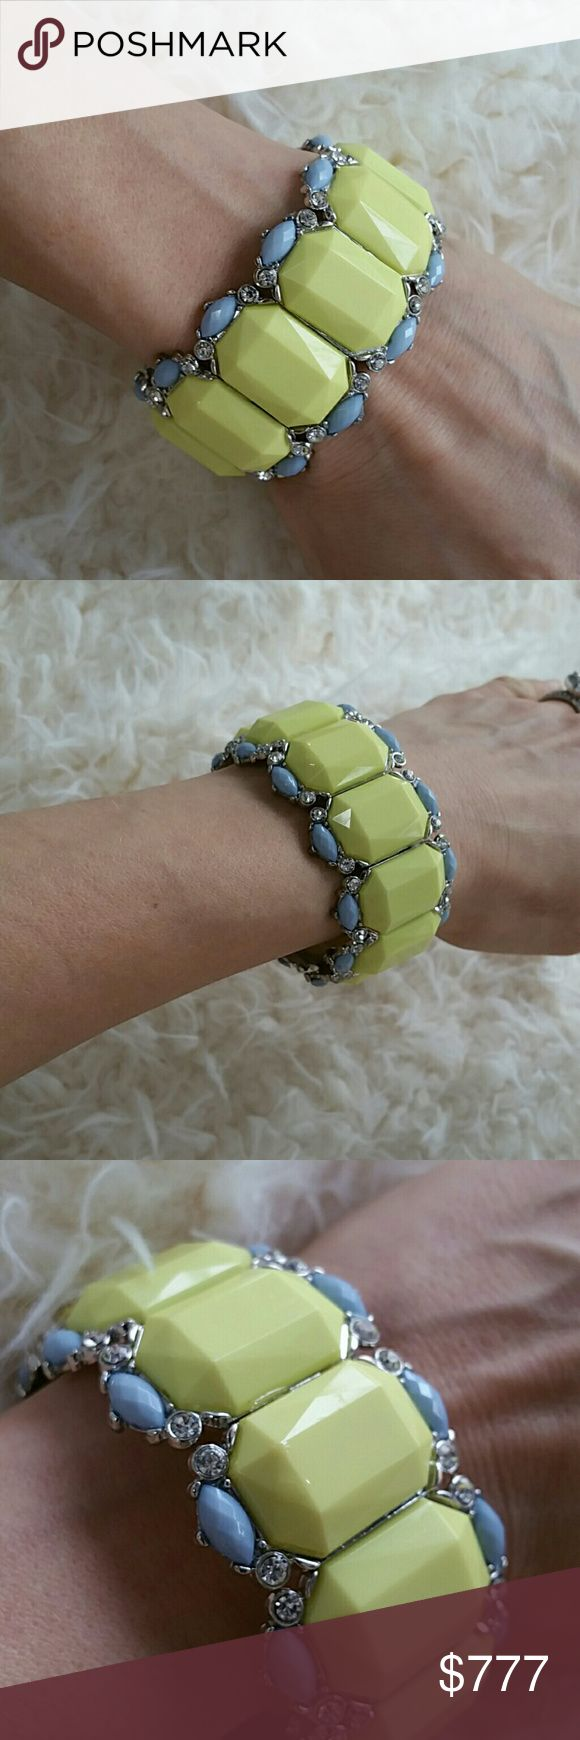 Glamorous yet colorful Bracelet Brand new!  Lovely bracelet, perfect to pair with any outfit to add a pop of color. Lime green, blues and rhinestone accents on a silver toned metal with Elastic banding inside.     Vacation, mothers day gift anniversary date night party cruise    Jewelry Bracelets